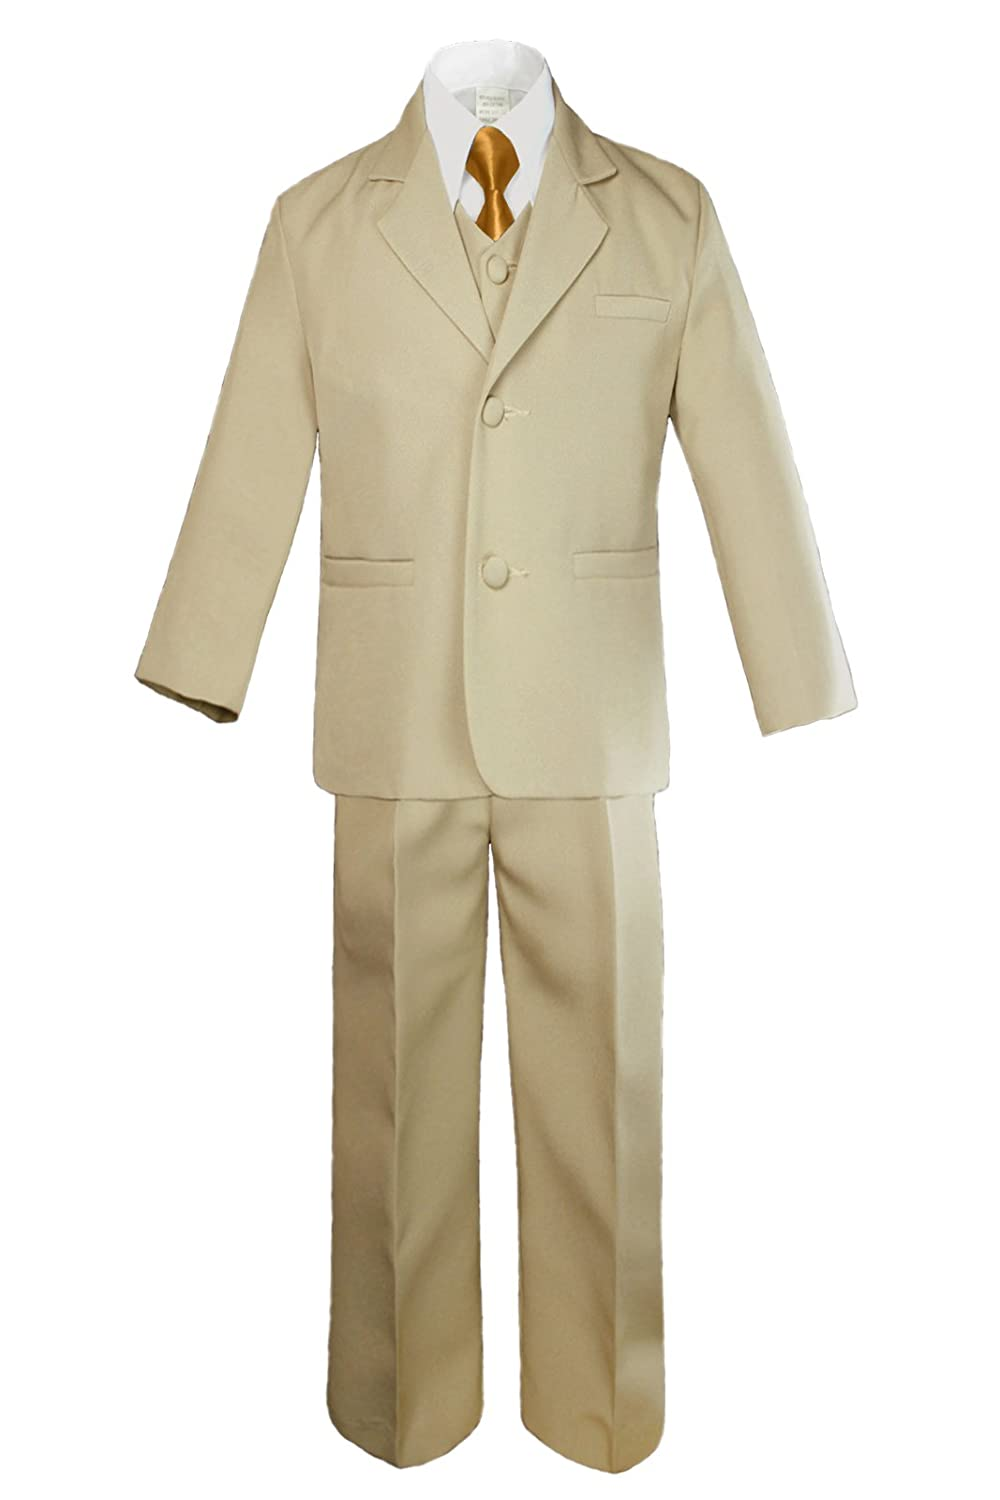 Unotux 6pc Boys Khaki Vest Set Suits with Satin Gold Necktie Outfits Baby Teen